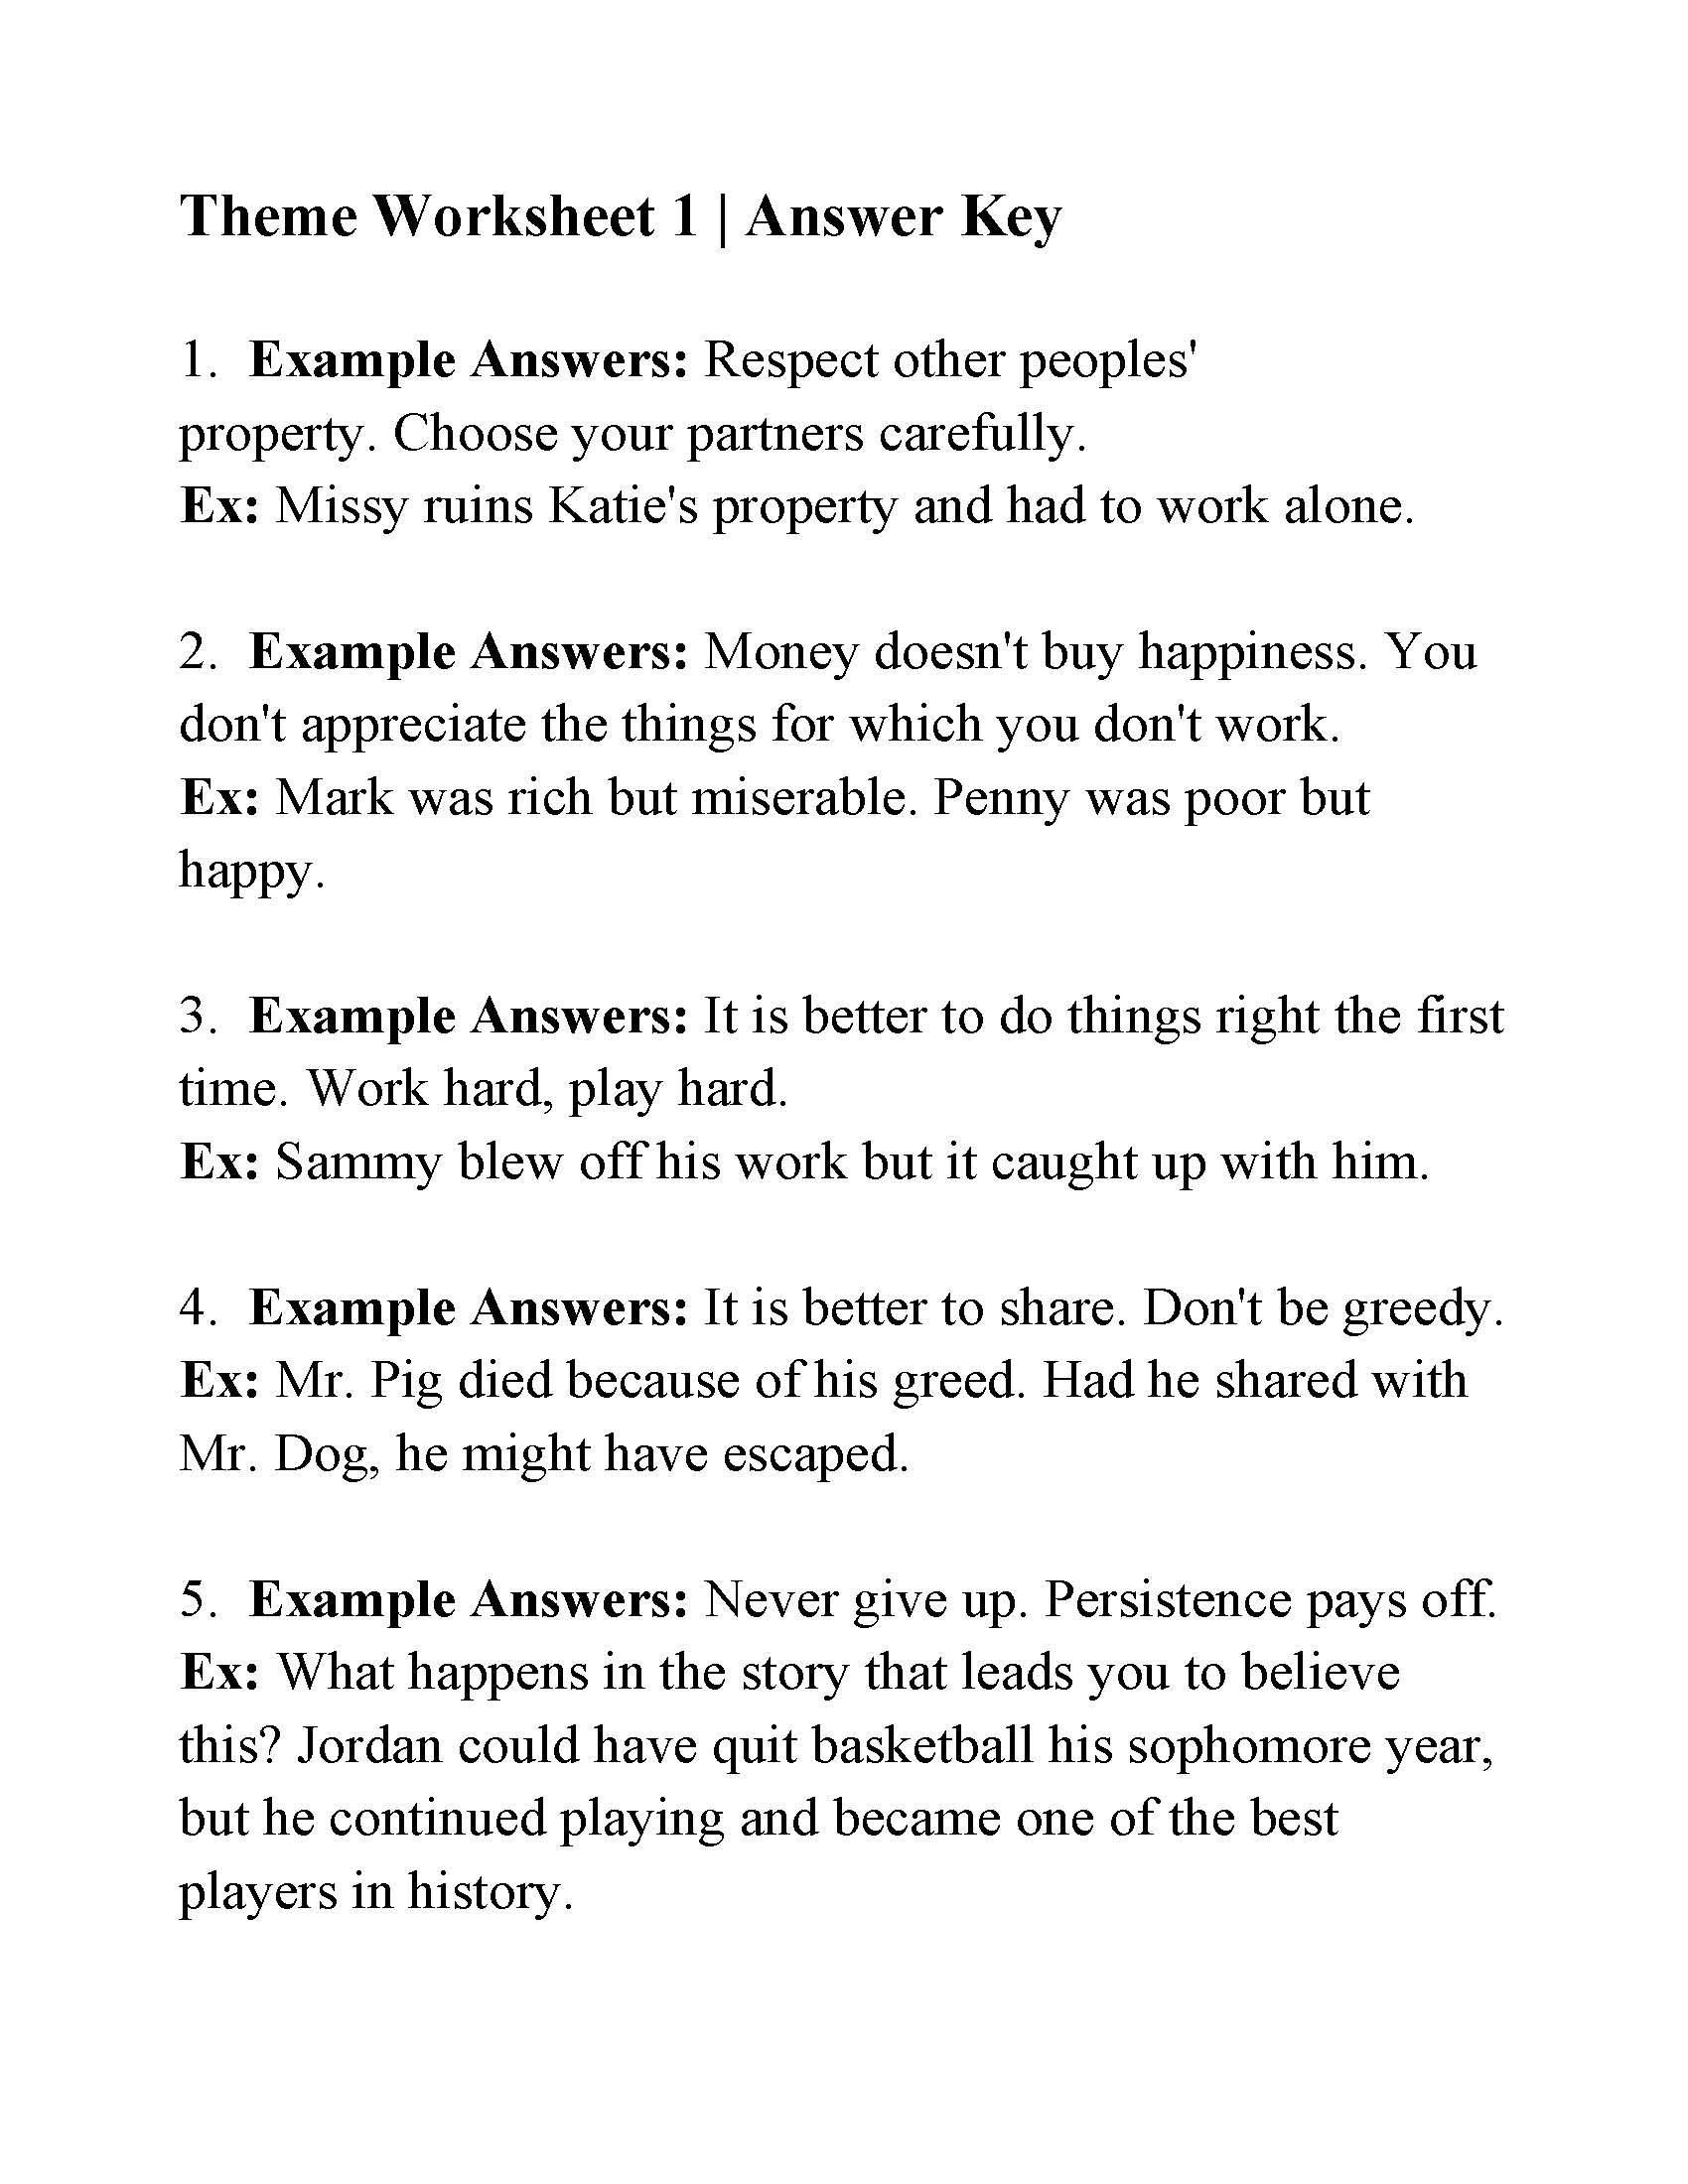 Theme Worksheets for Middle School This is the Answer Key for the theme Worksheet 1